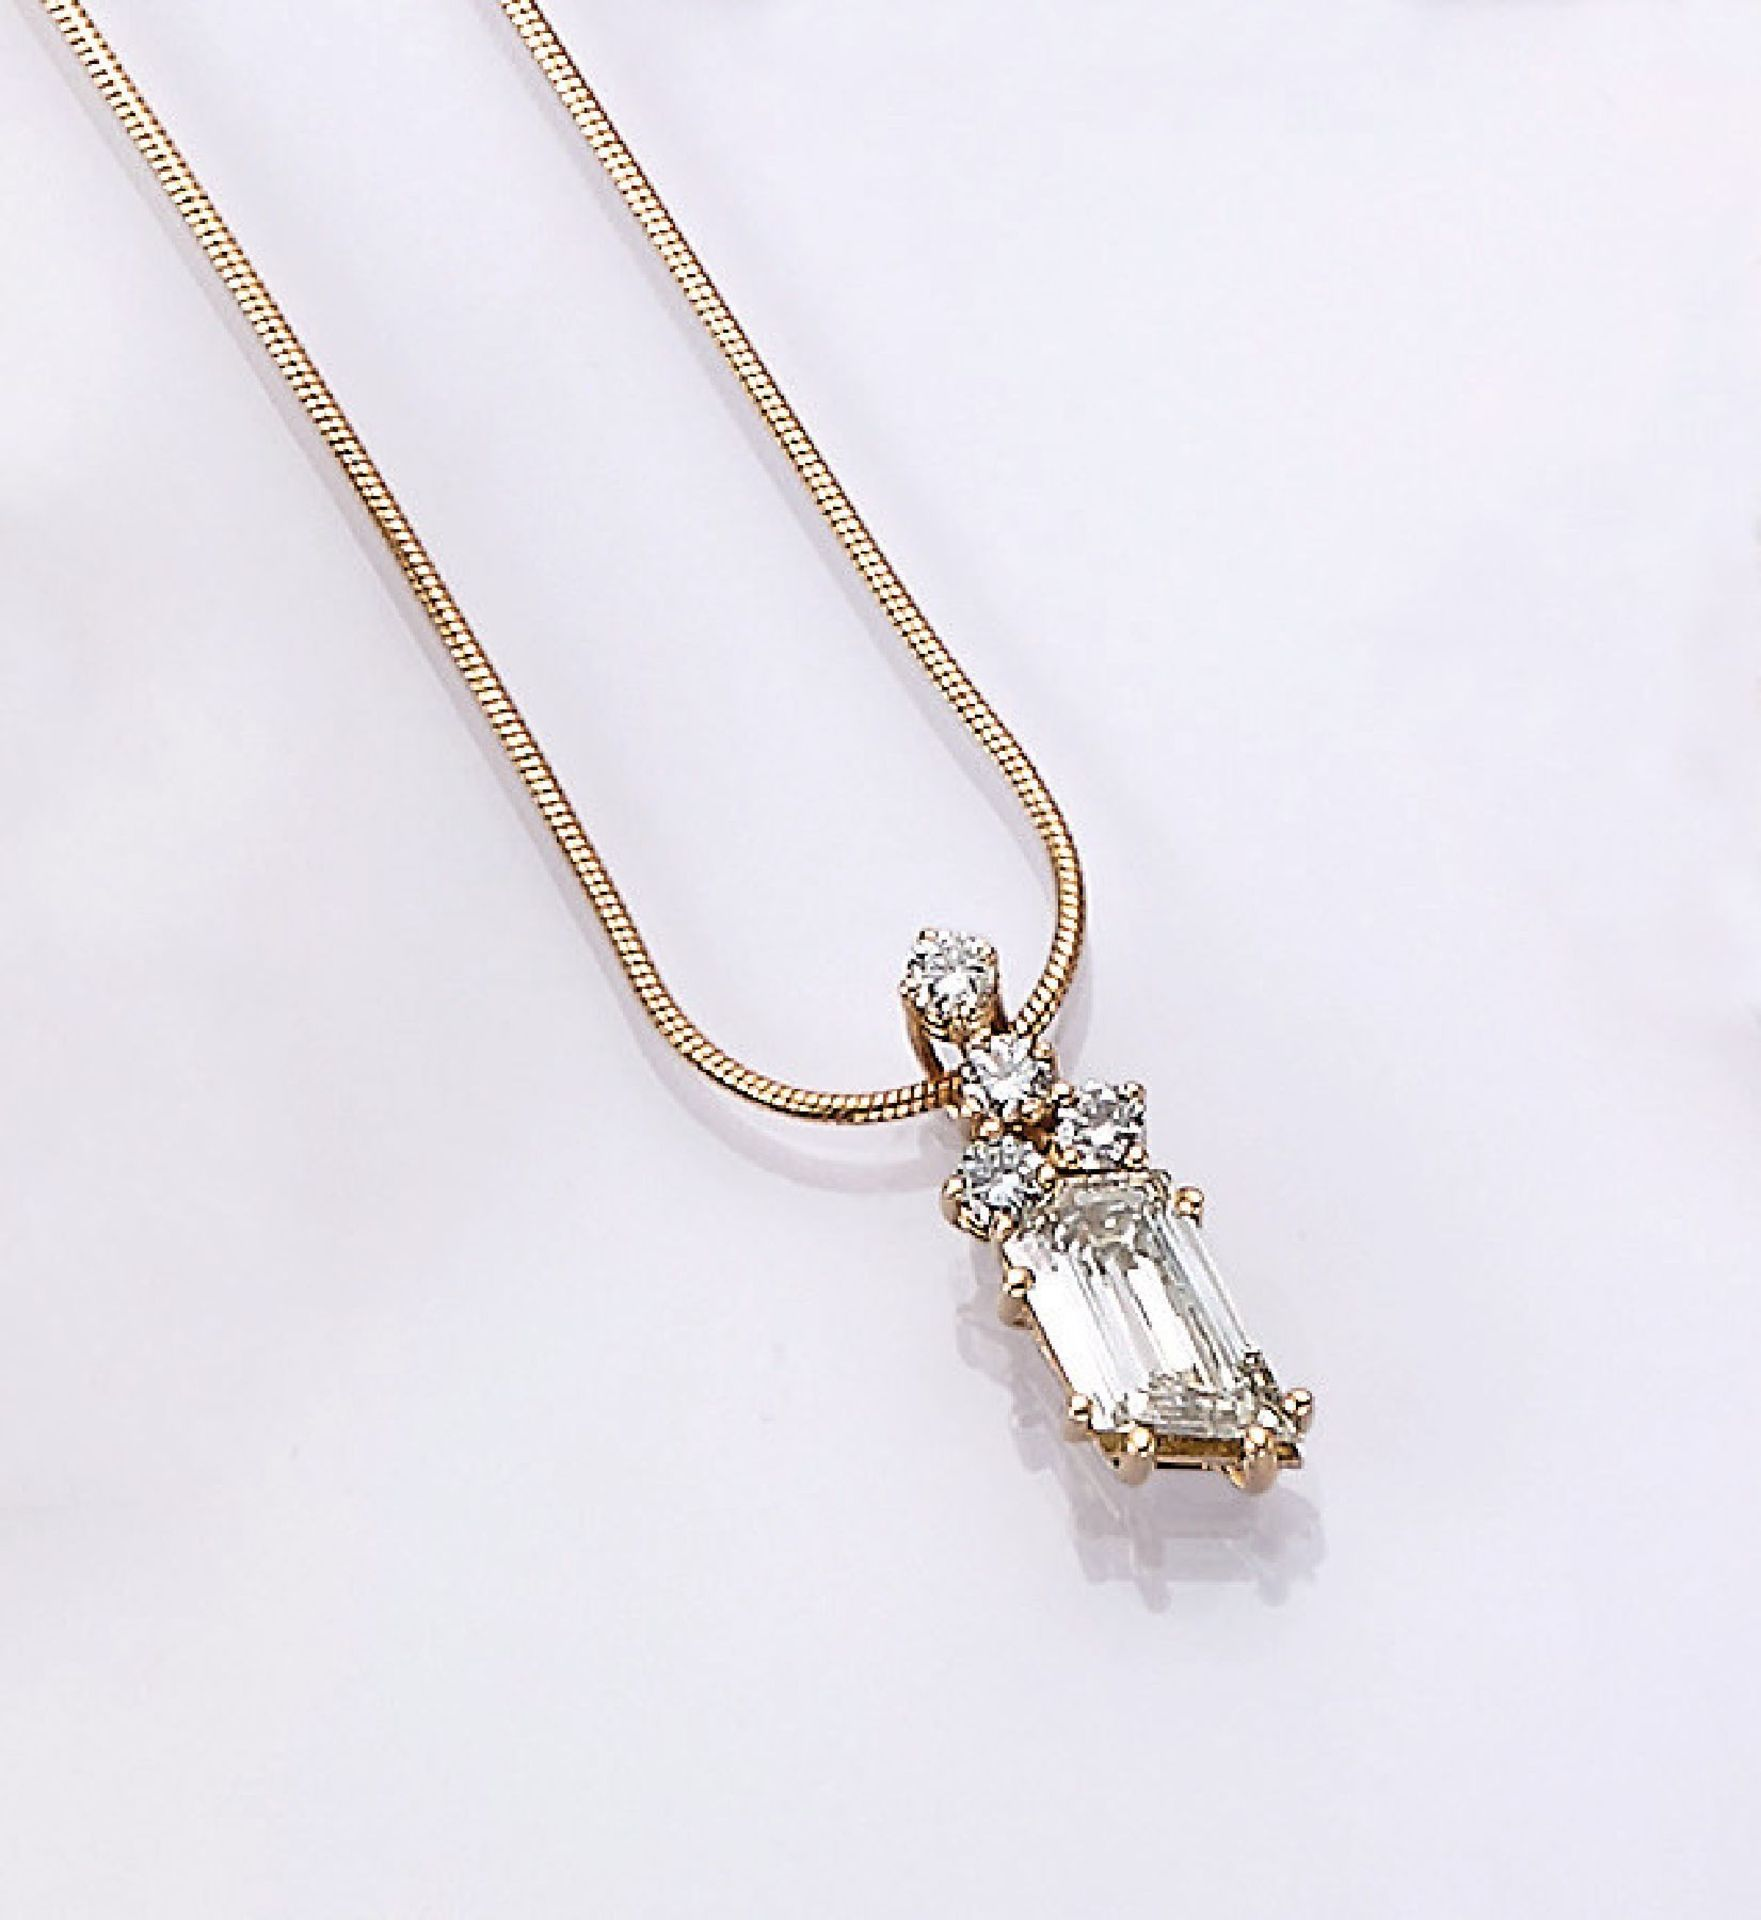 Los 31513 - 18 kt gold pendant with diamonds , chain, YG750/000, diamond in fantasy cut approx. 1.23 ct (